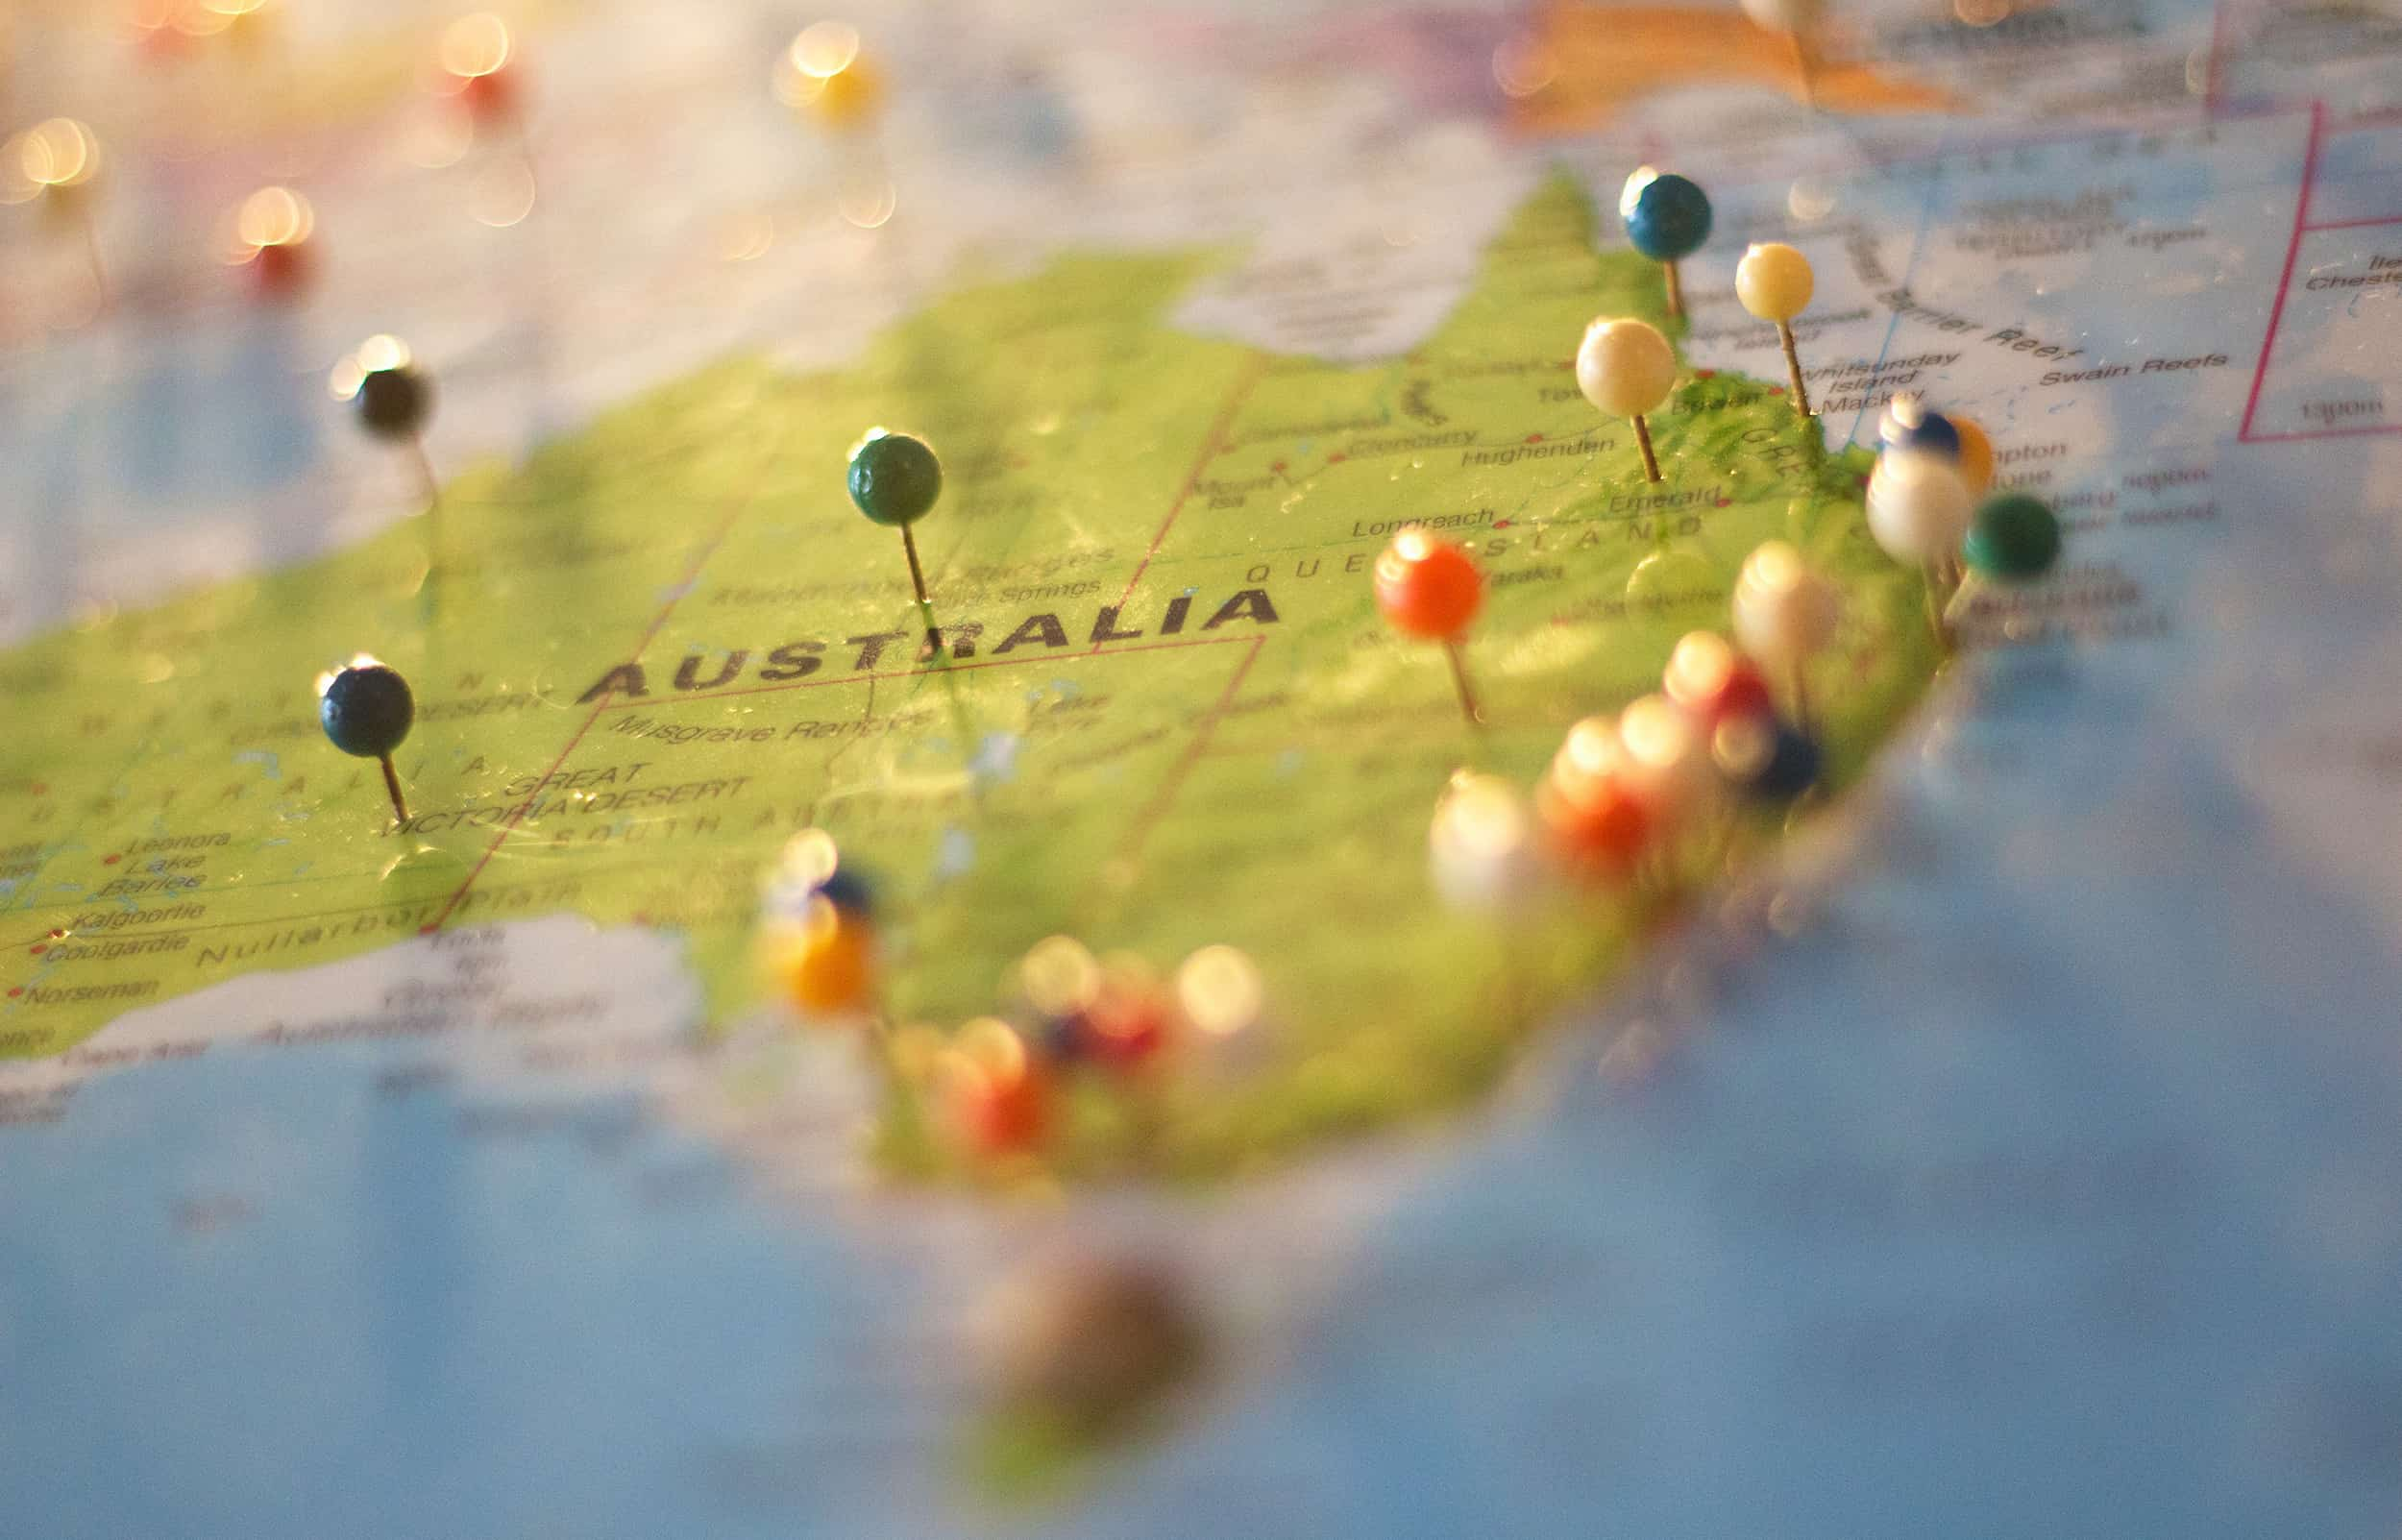 A map of Australia with pins are various towns and cities